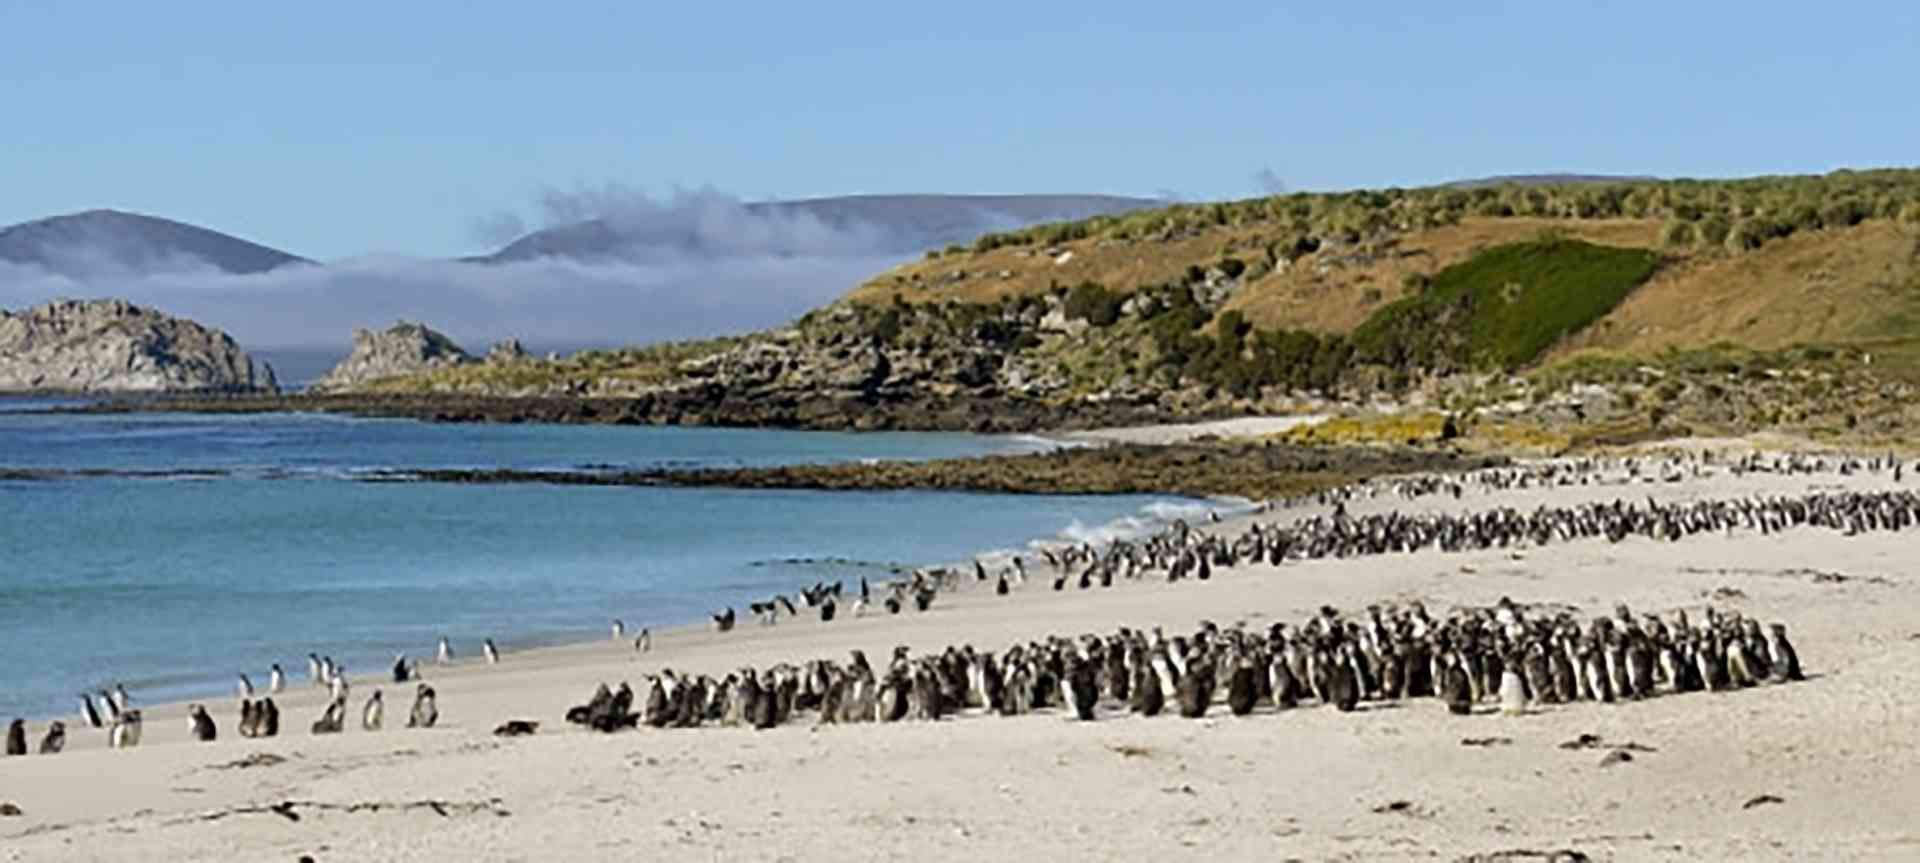 Magellanic Penguins by Werner Thiele - Oceanwide Expeditions